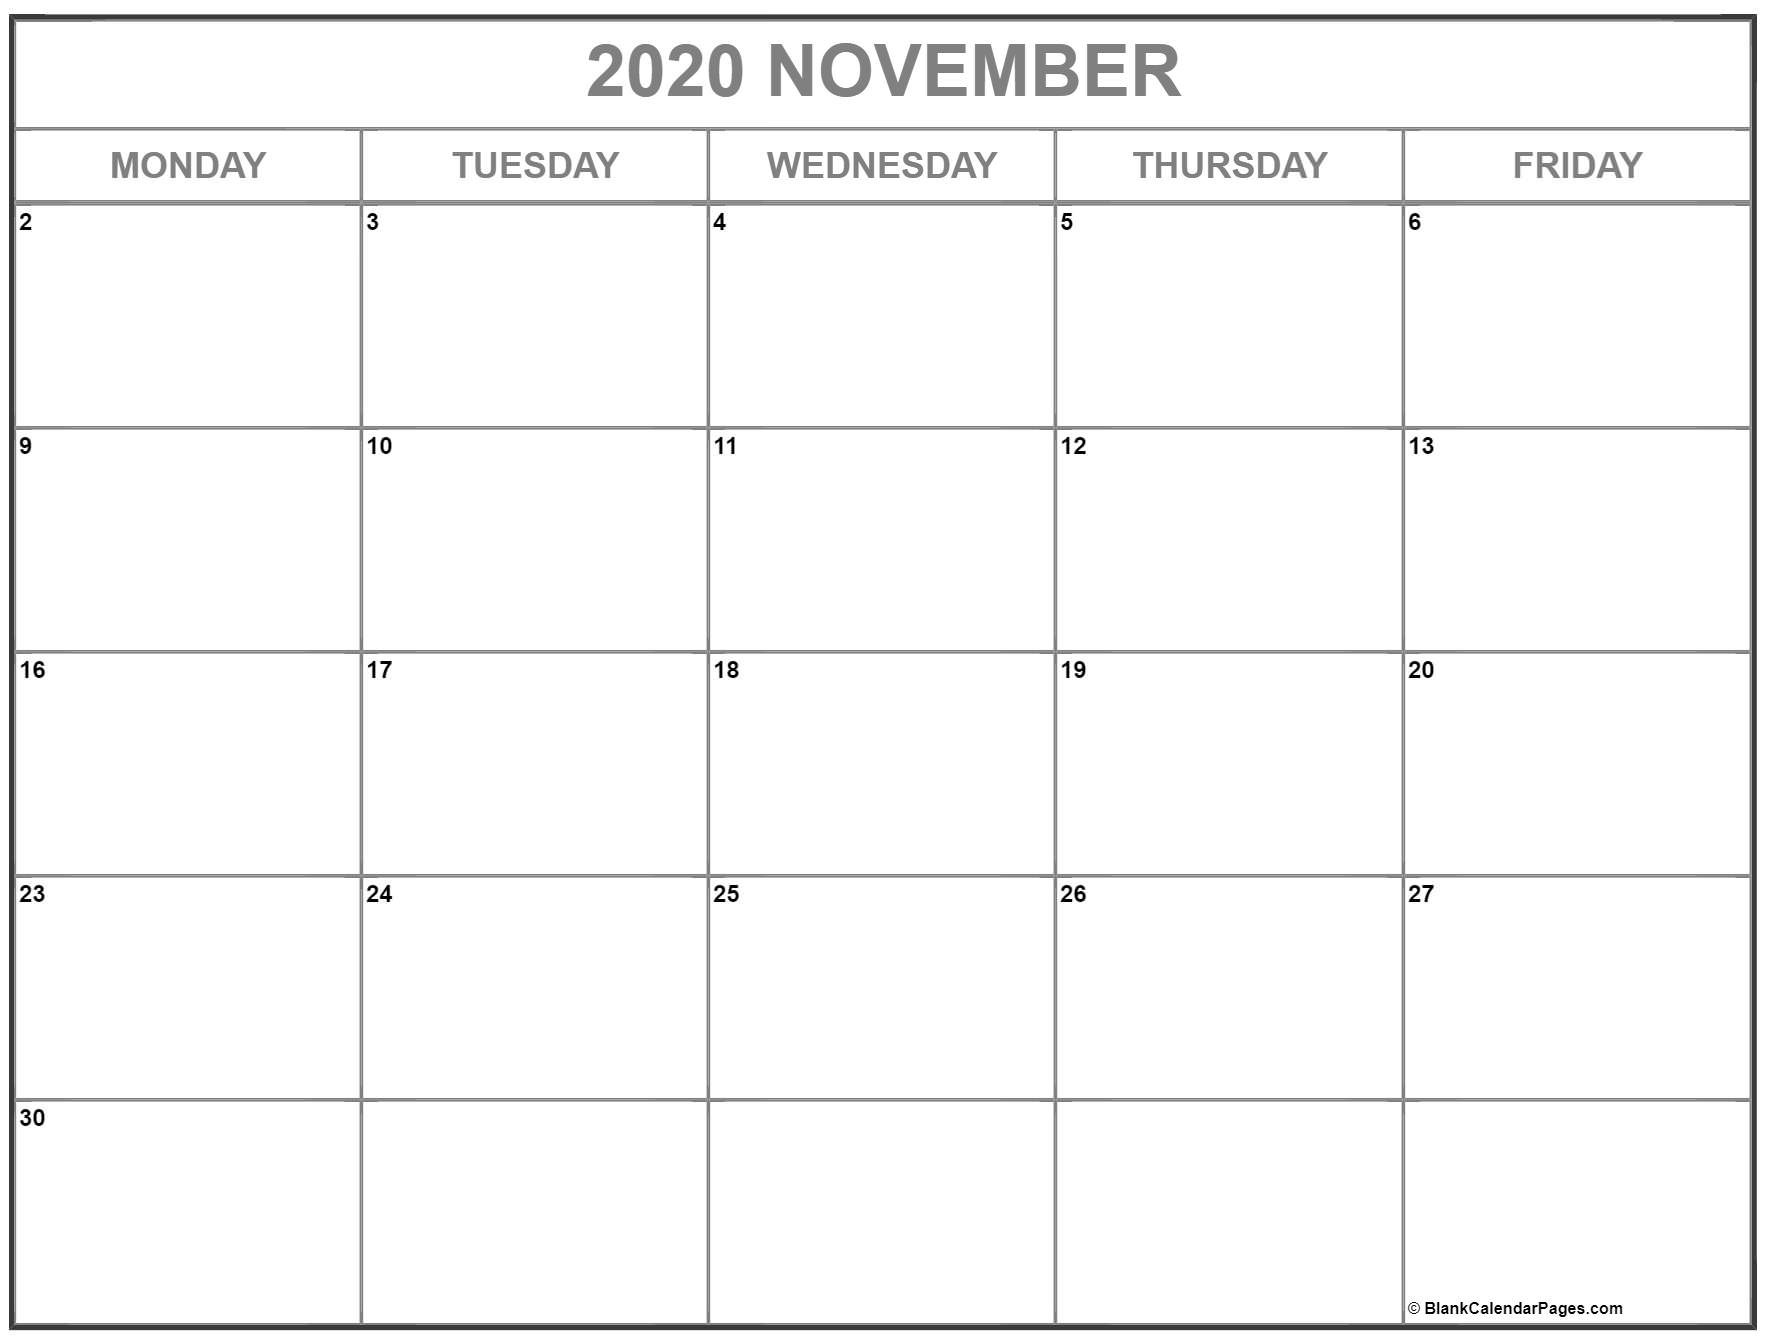 November 2020 Monday Calendar | Monday To Sunday Monday To Friday Calender